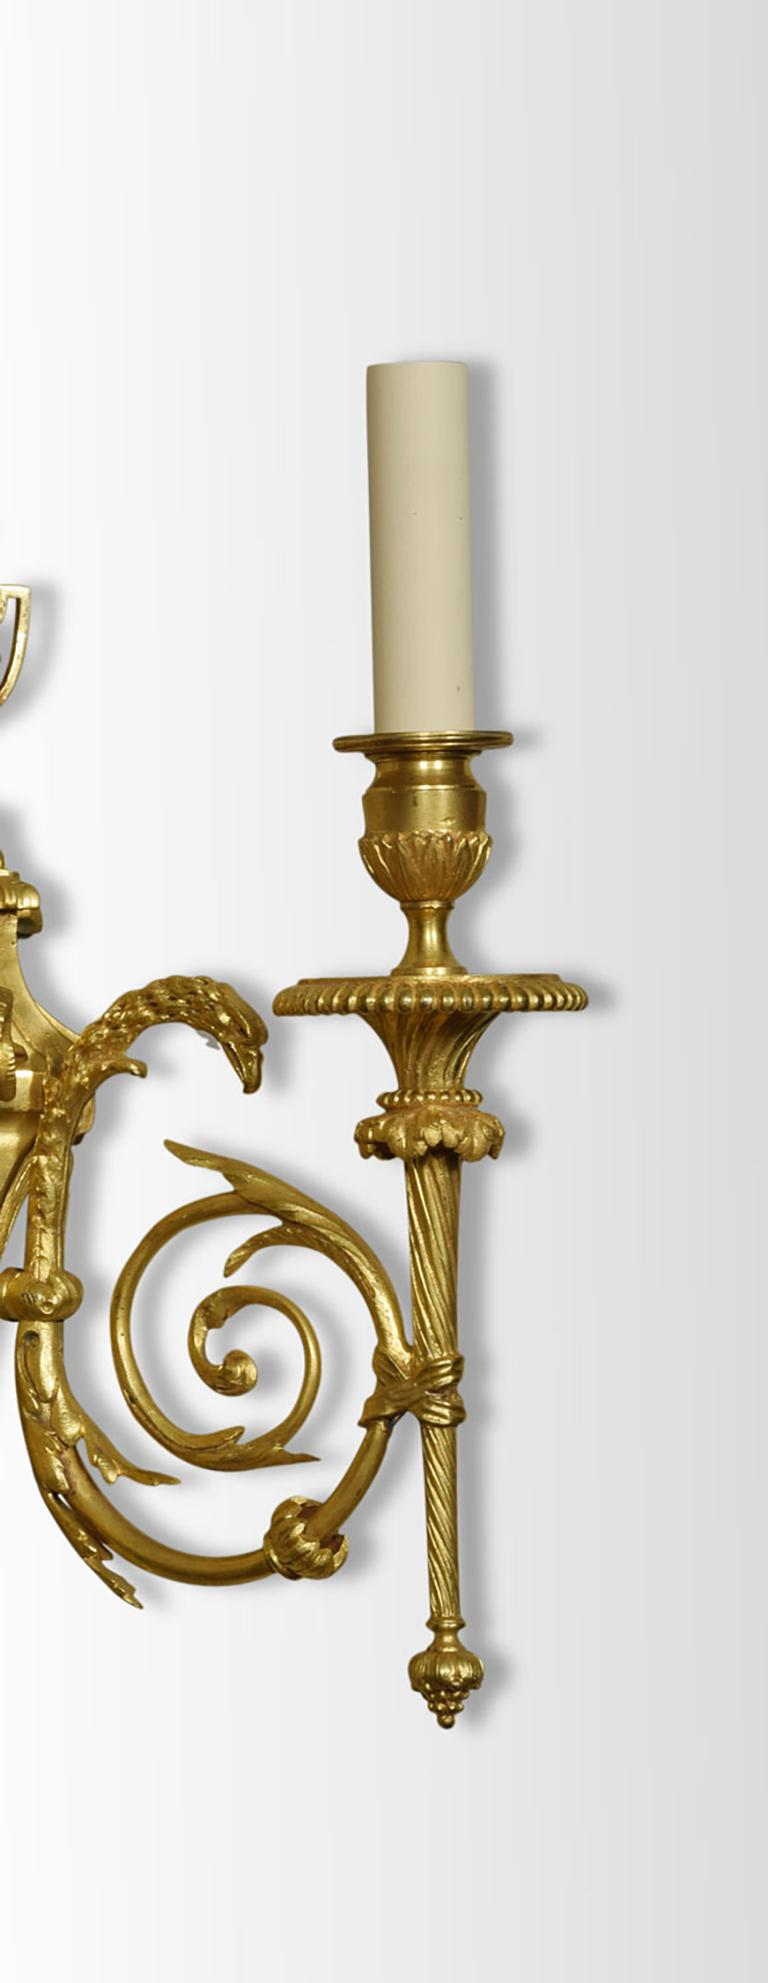 Pair of French Gilded Bronze Wall Lights In Good Condition For Sale In Cheshire, GB